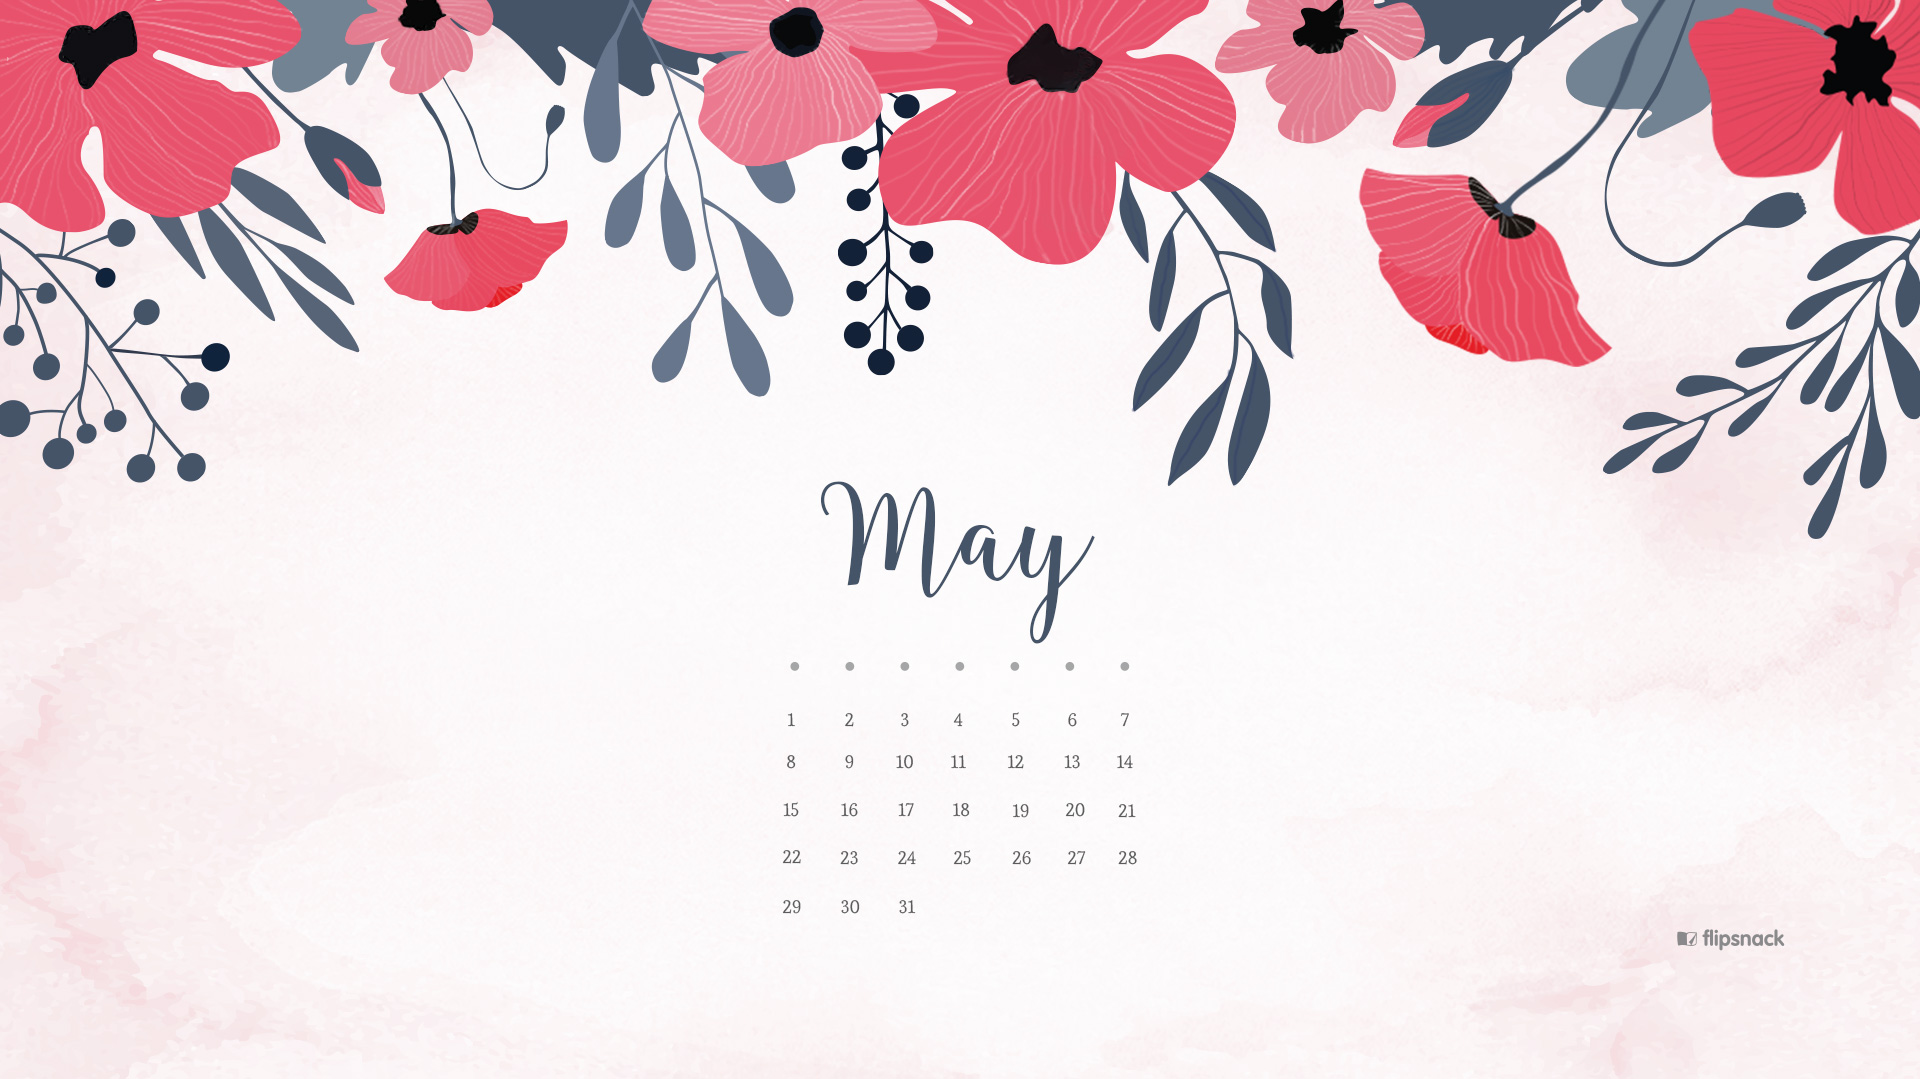 Floral May 2019 Desktop Screensaver Calendar